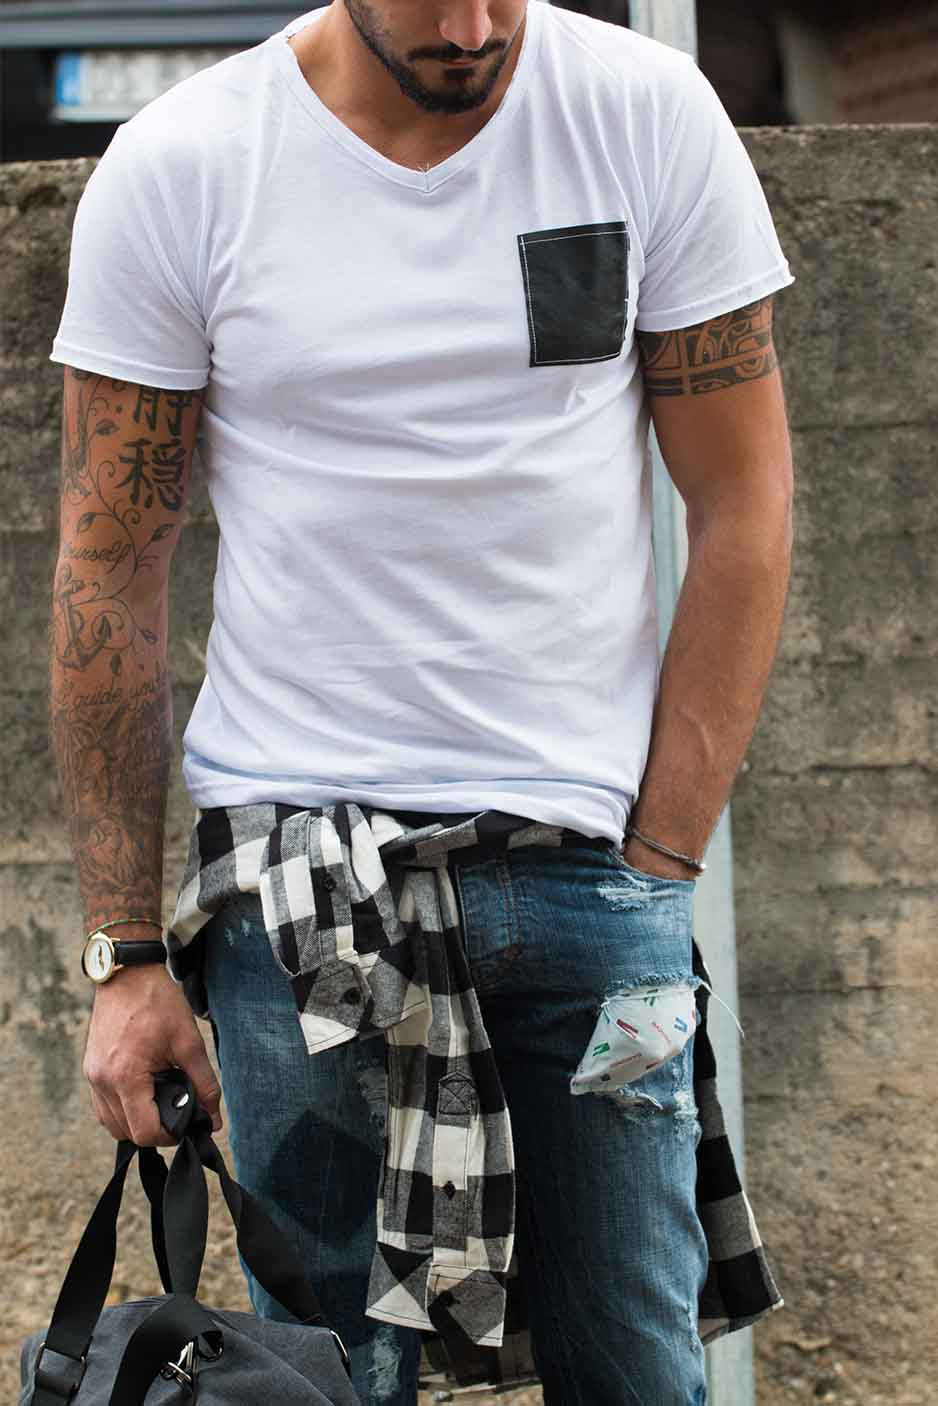 WHITE POCKET LEATHER BLACK T-SHIRT STREET STYLE MAN